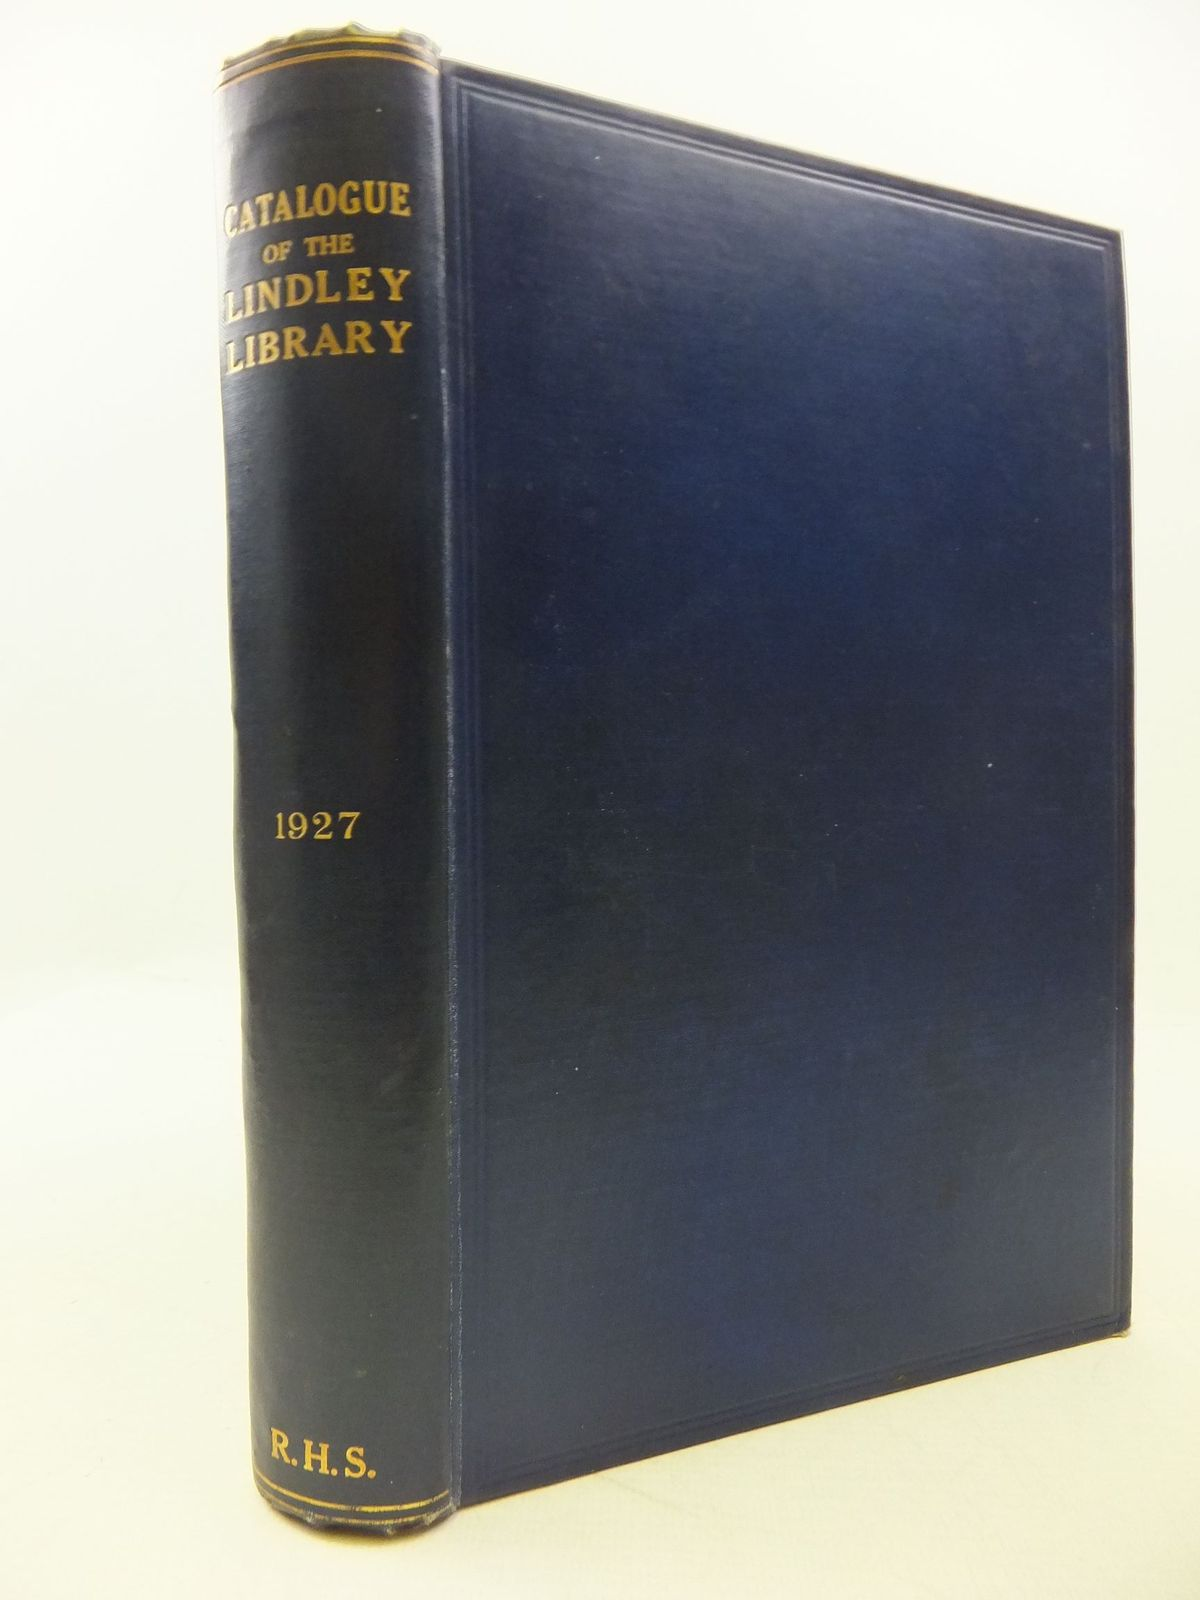 Photo of THE LINDLEY LIBRAY published by Royal Horticultural society (STOCK CODE: 1708833)  for sale by Stella & Rose's Books